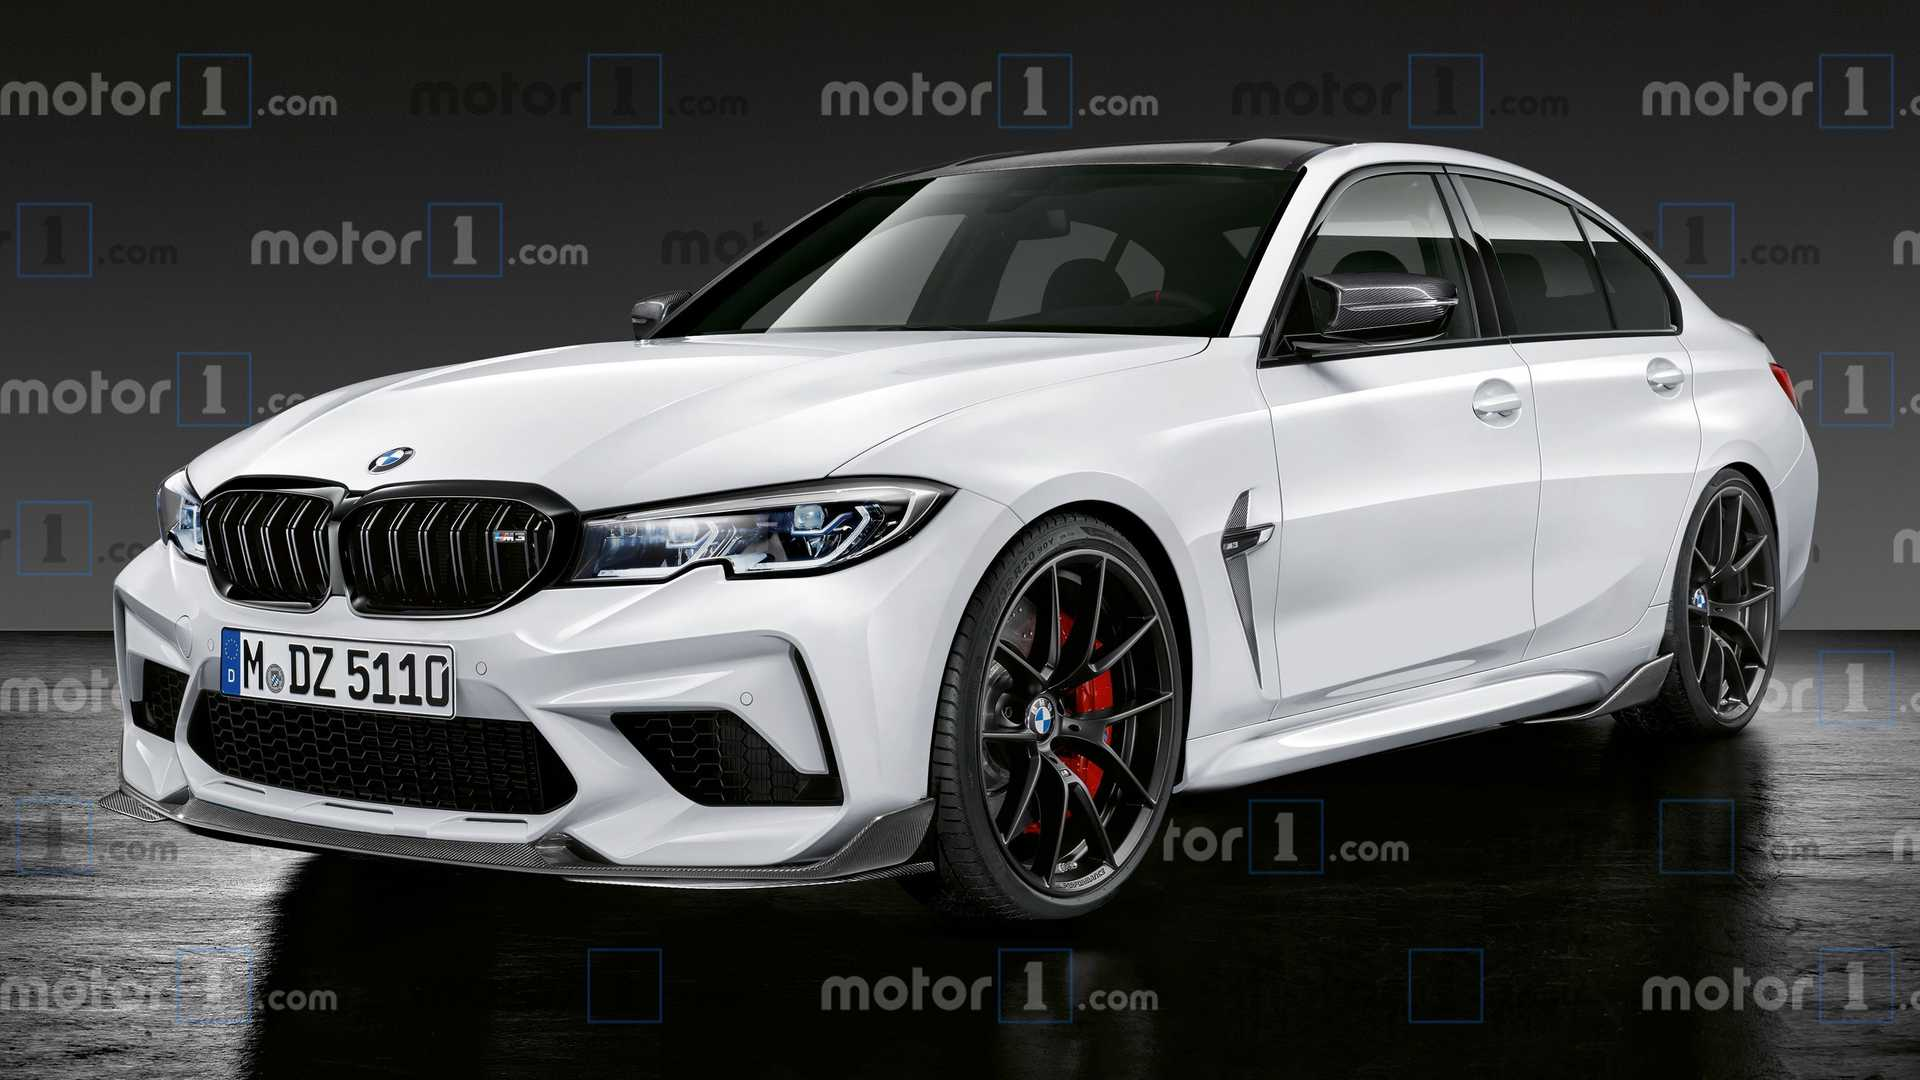 2021 BMW M3 Rendering Imagines A Calmer, Friendlier Monster Sedan